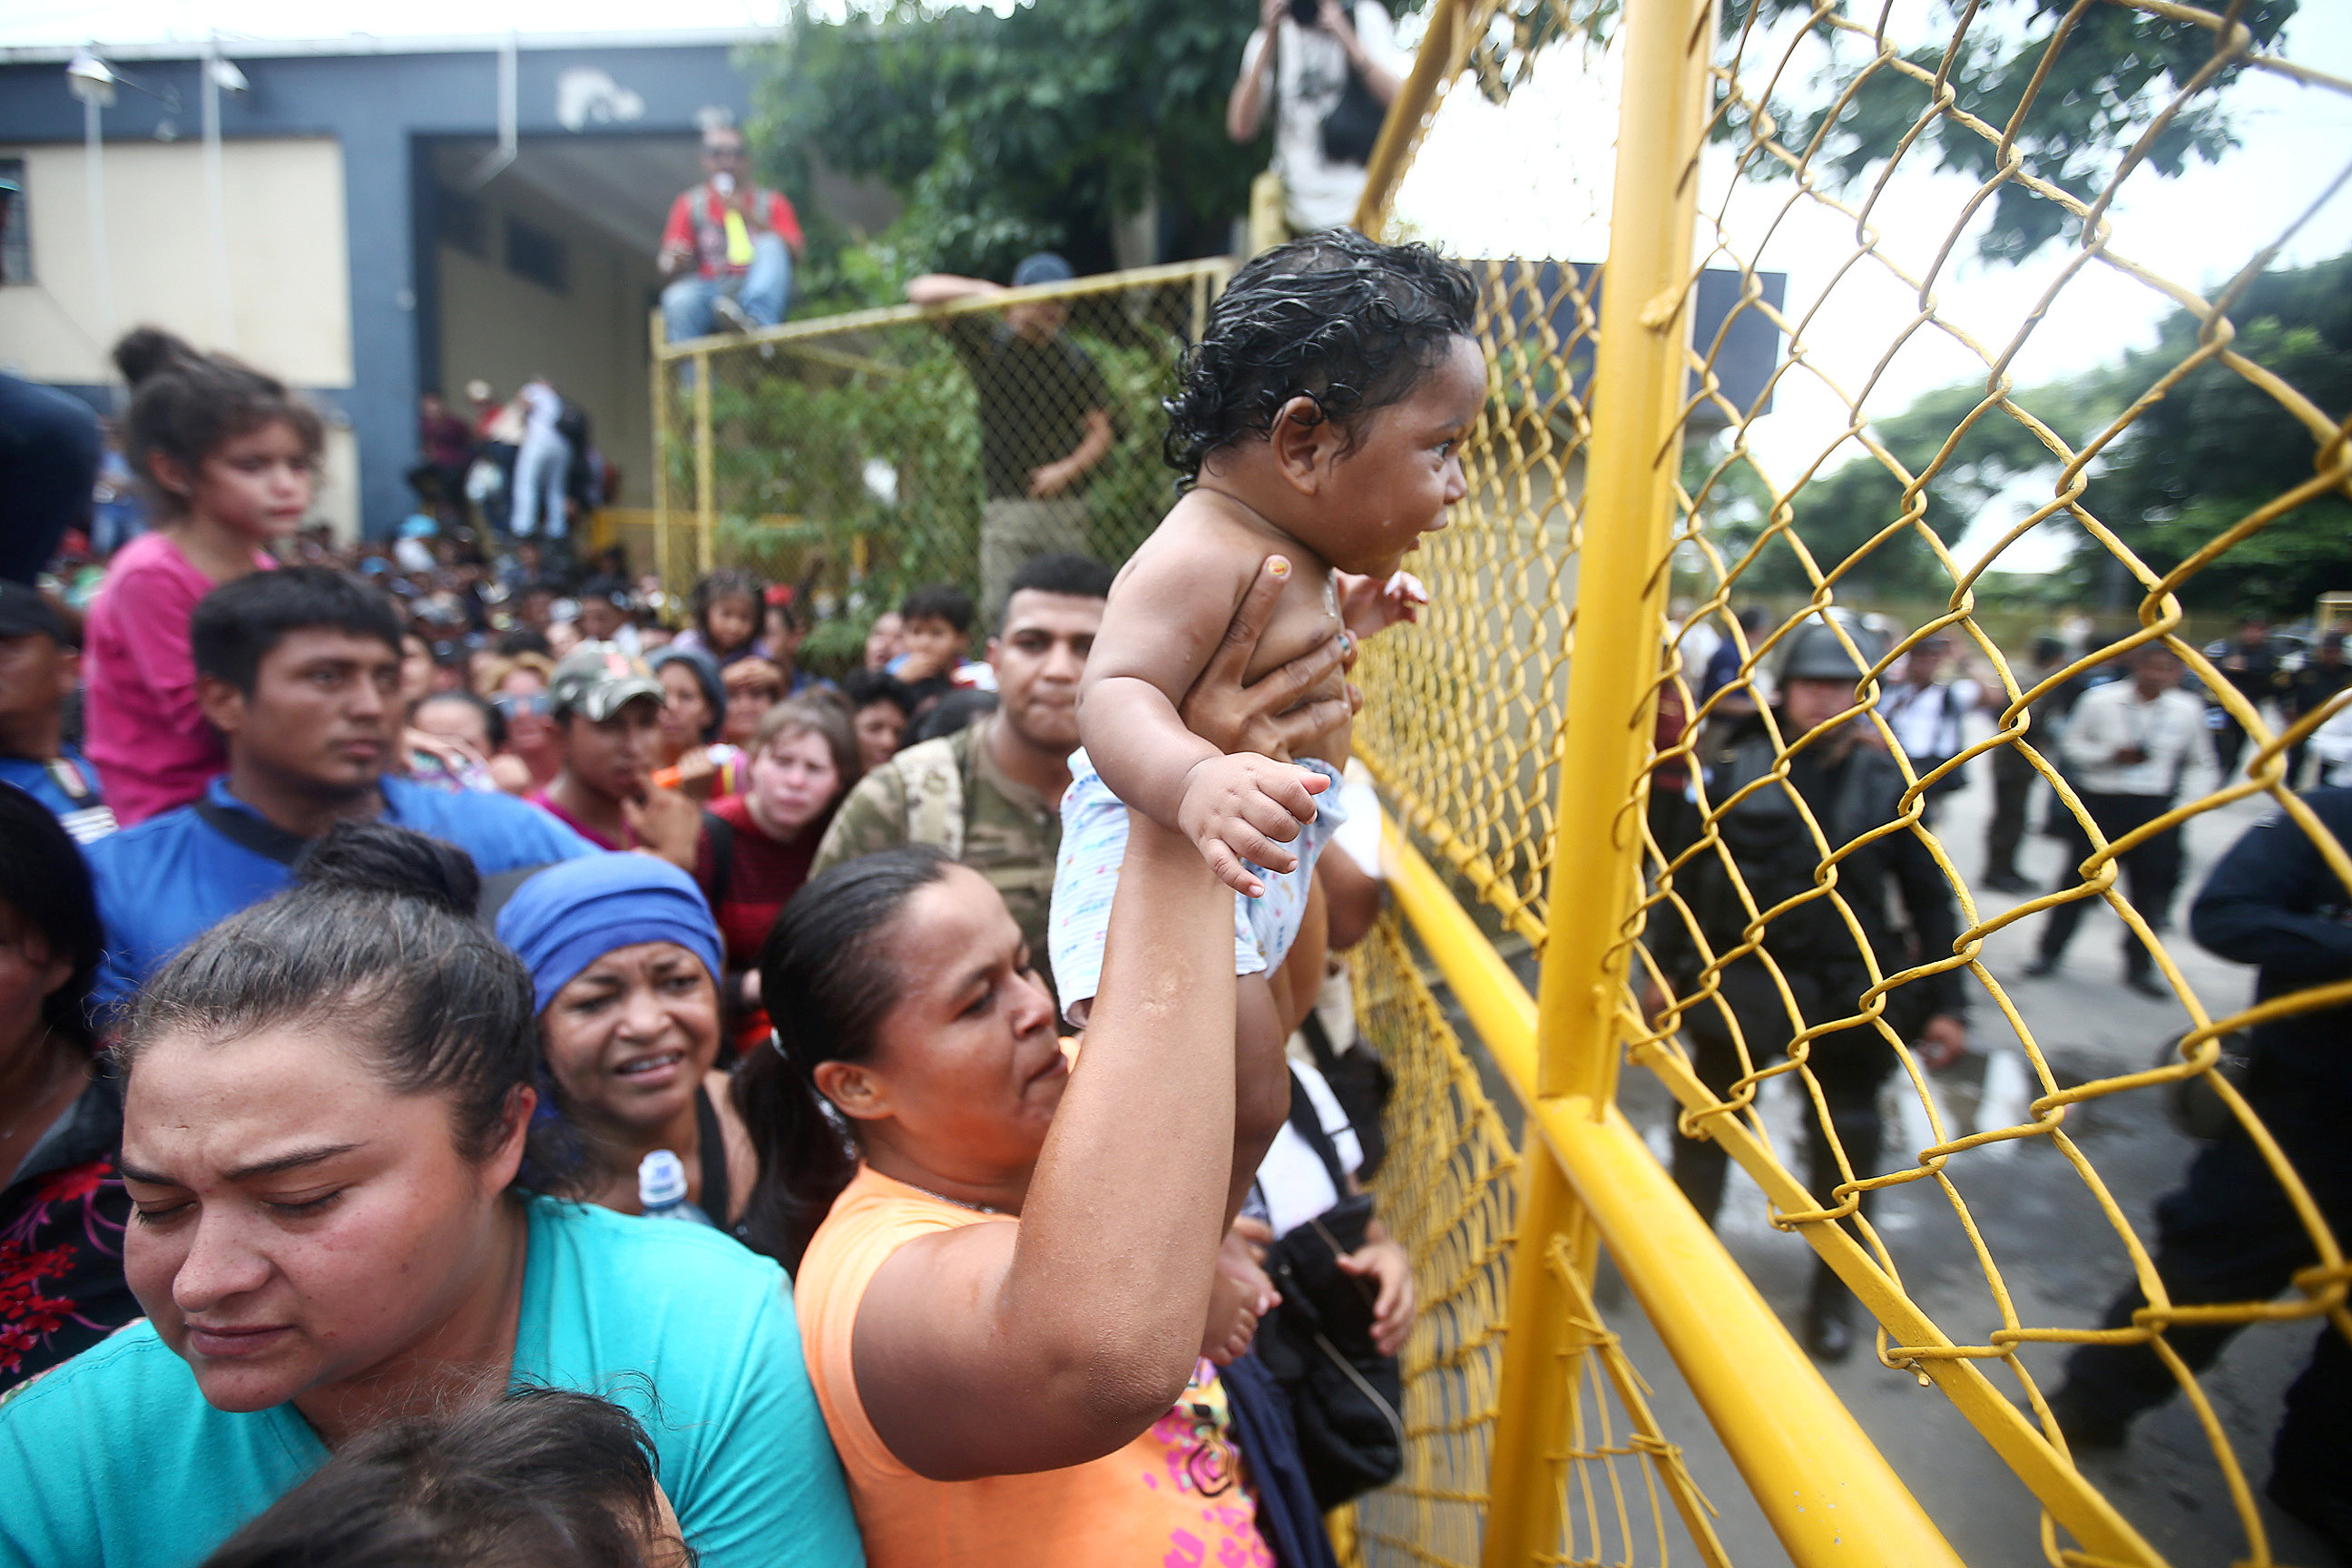 A Honduran migrant, part of a caravan trying to reach the U.S., holds a baby in front of a fence in the checkpoint between Guatemala and Mexico in Tecun Uman